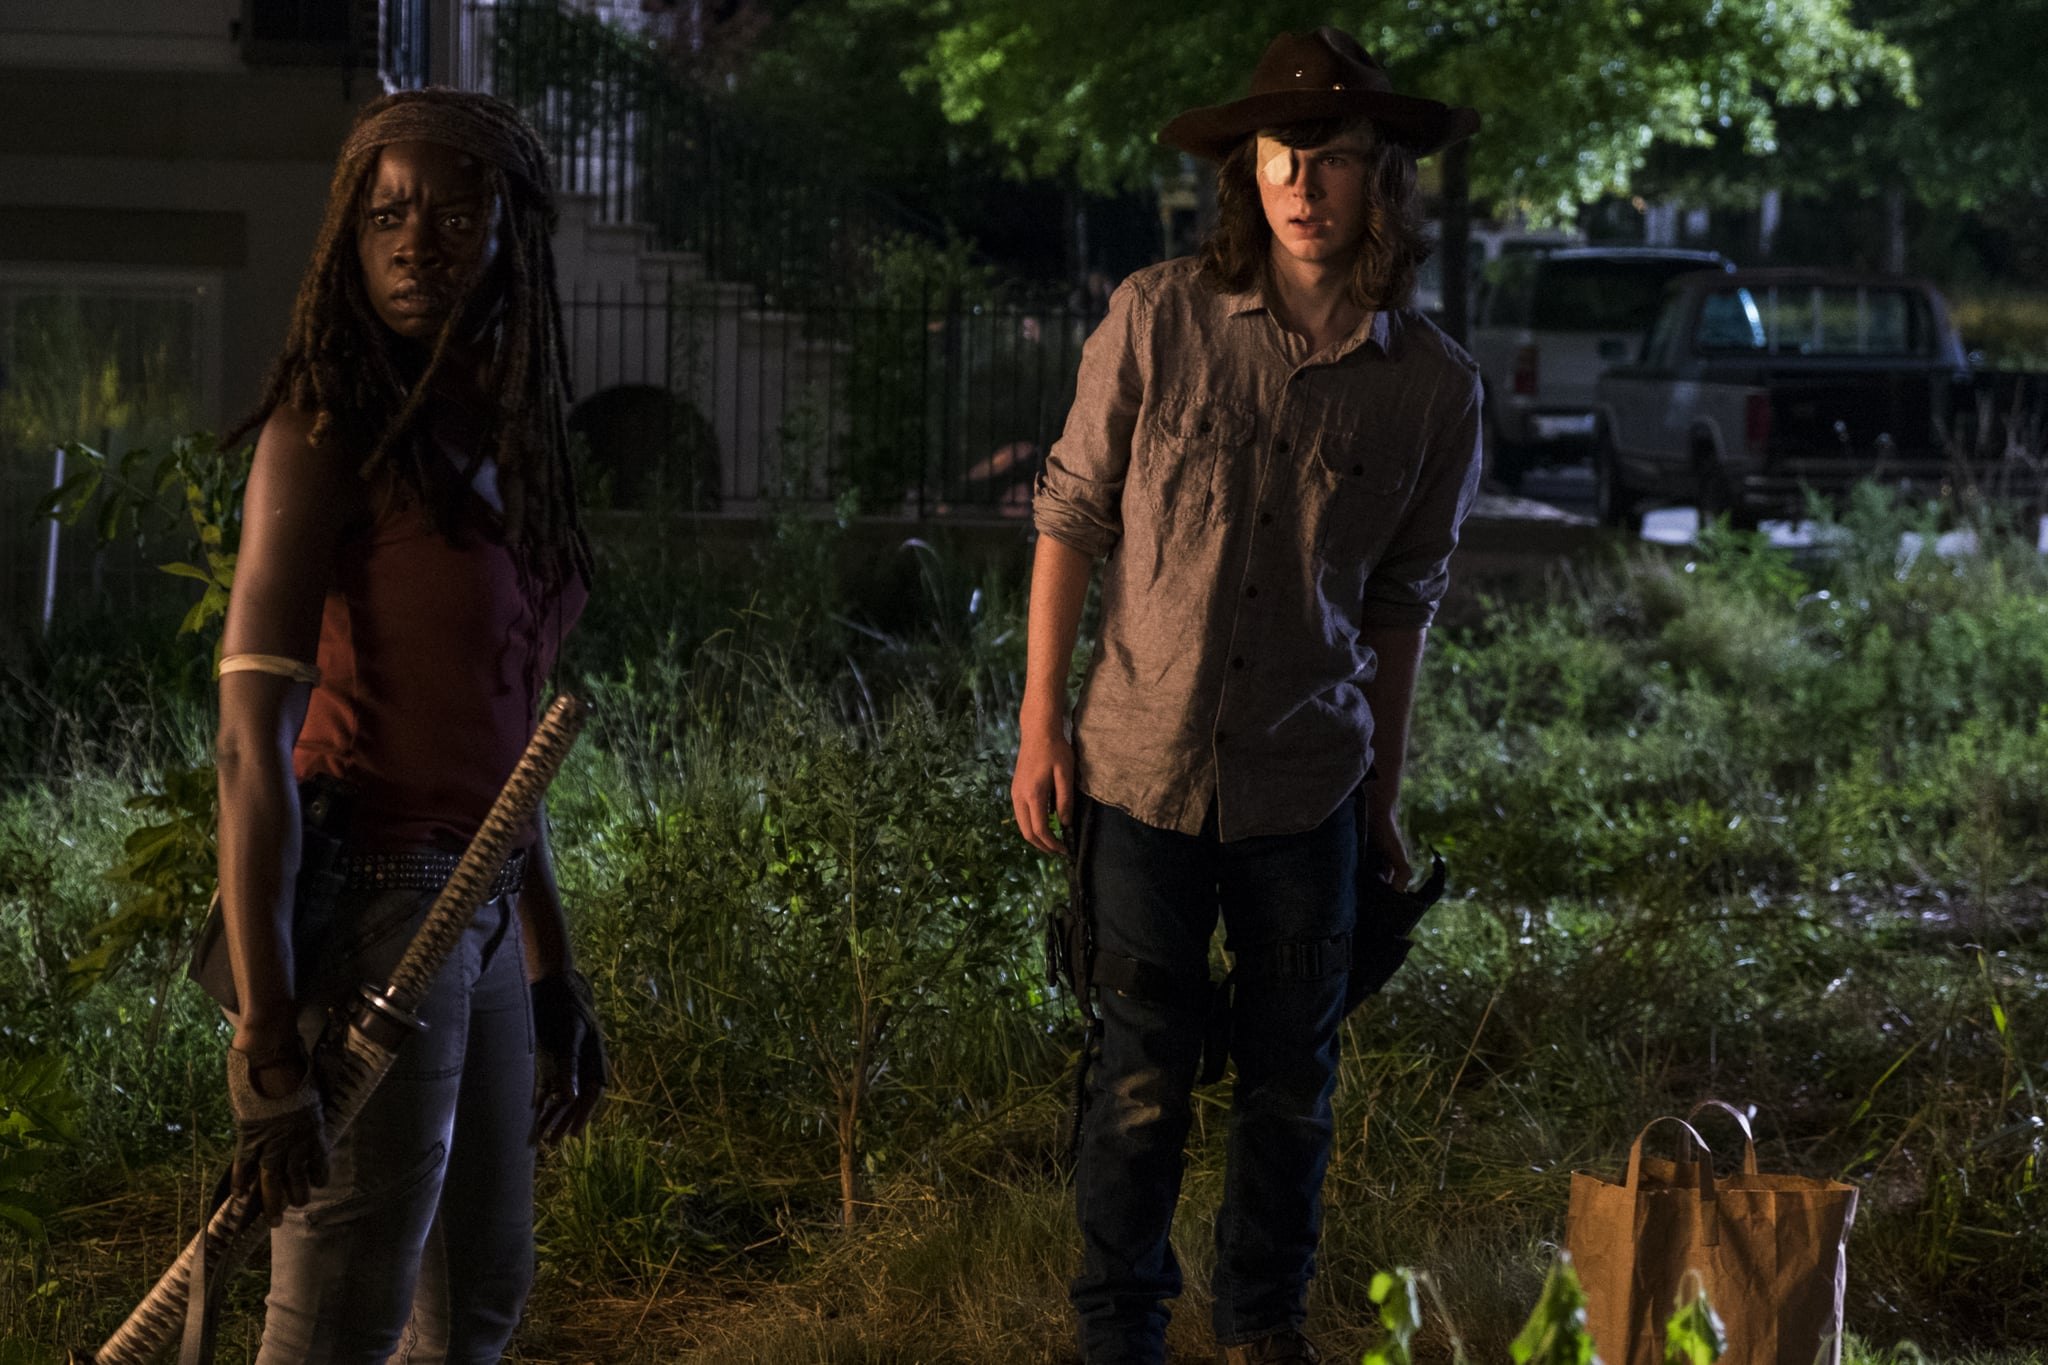 Danai Gurira Got 'Depressed' Over 'The Walking Dead' Carl Storyline